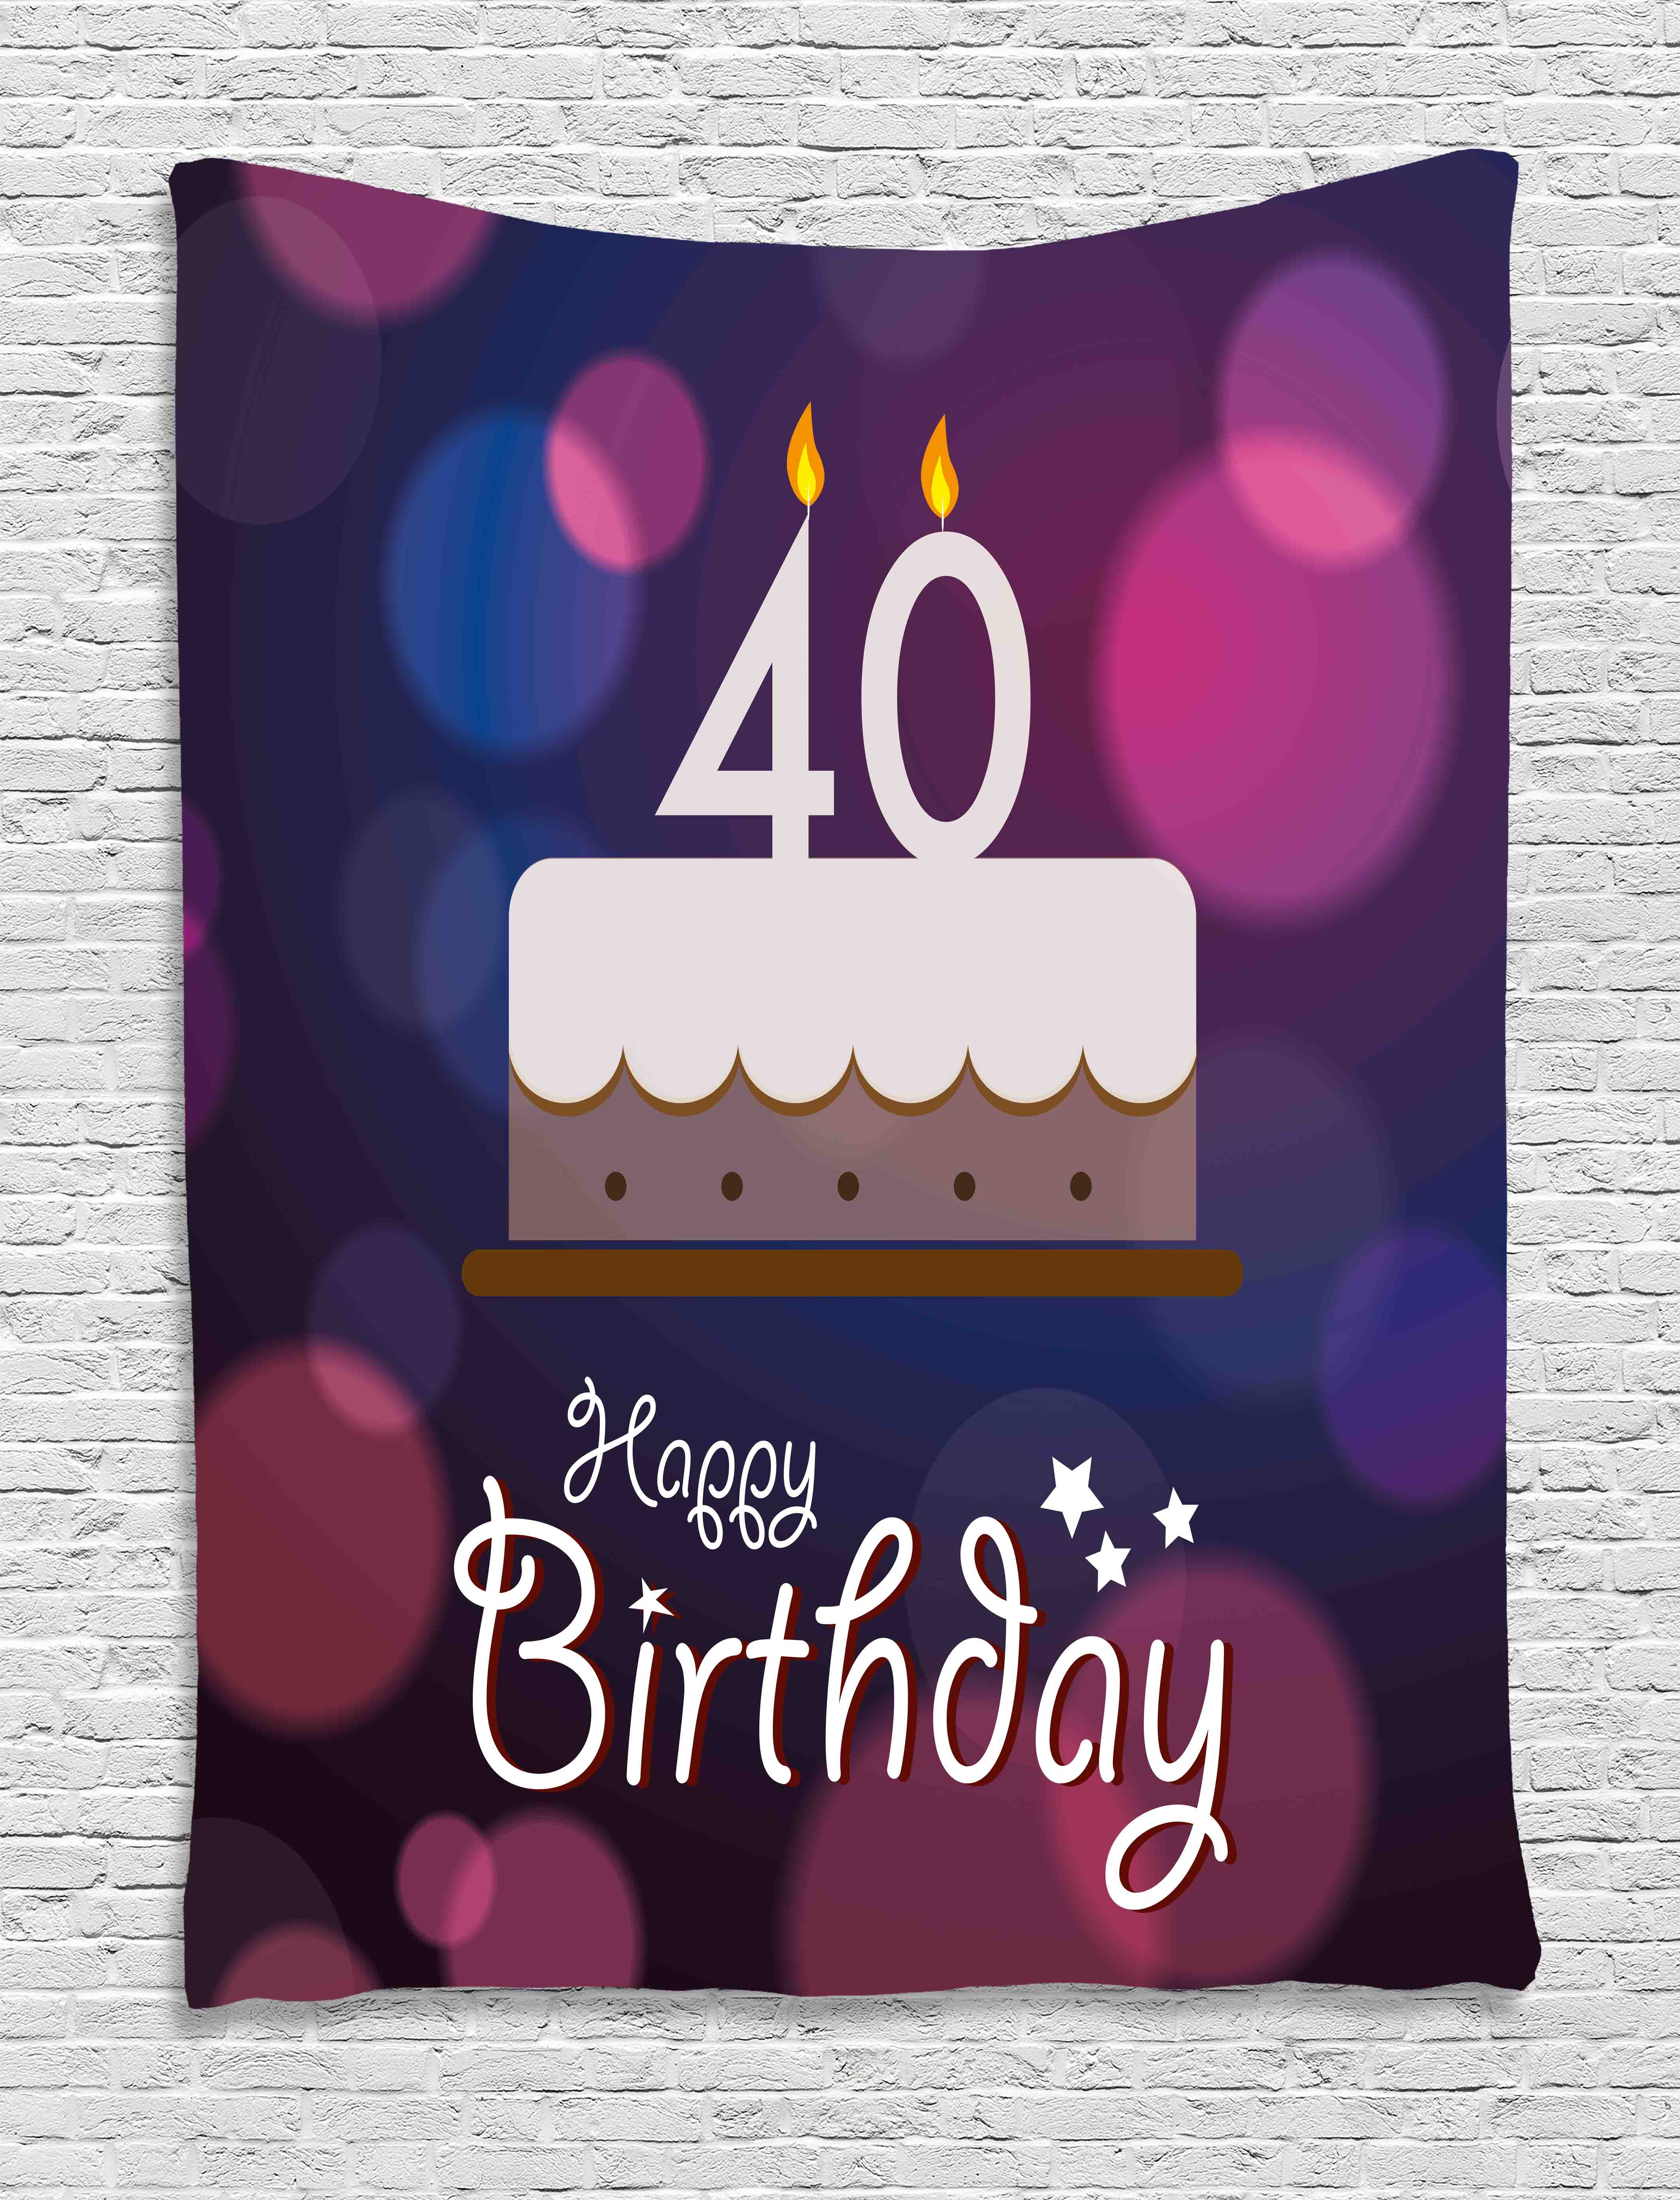 40th Birthday Decorations Tapestry Big Color Dots And Graphic Cake Candles Hand Writing Stars Wall Hanging For Bedroom Living Room Dorm Decor